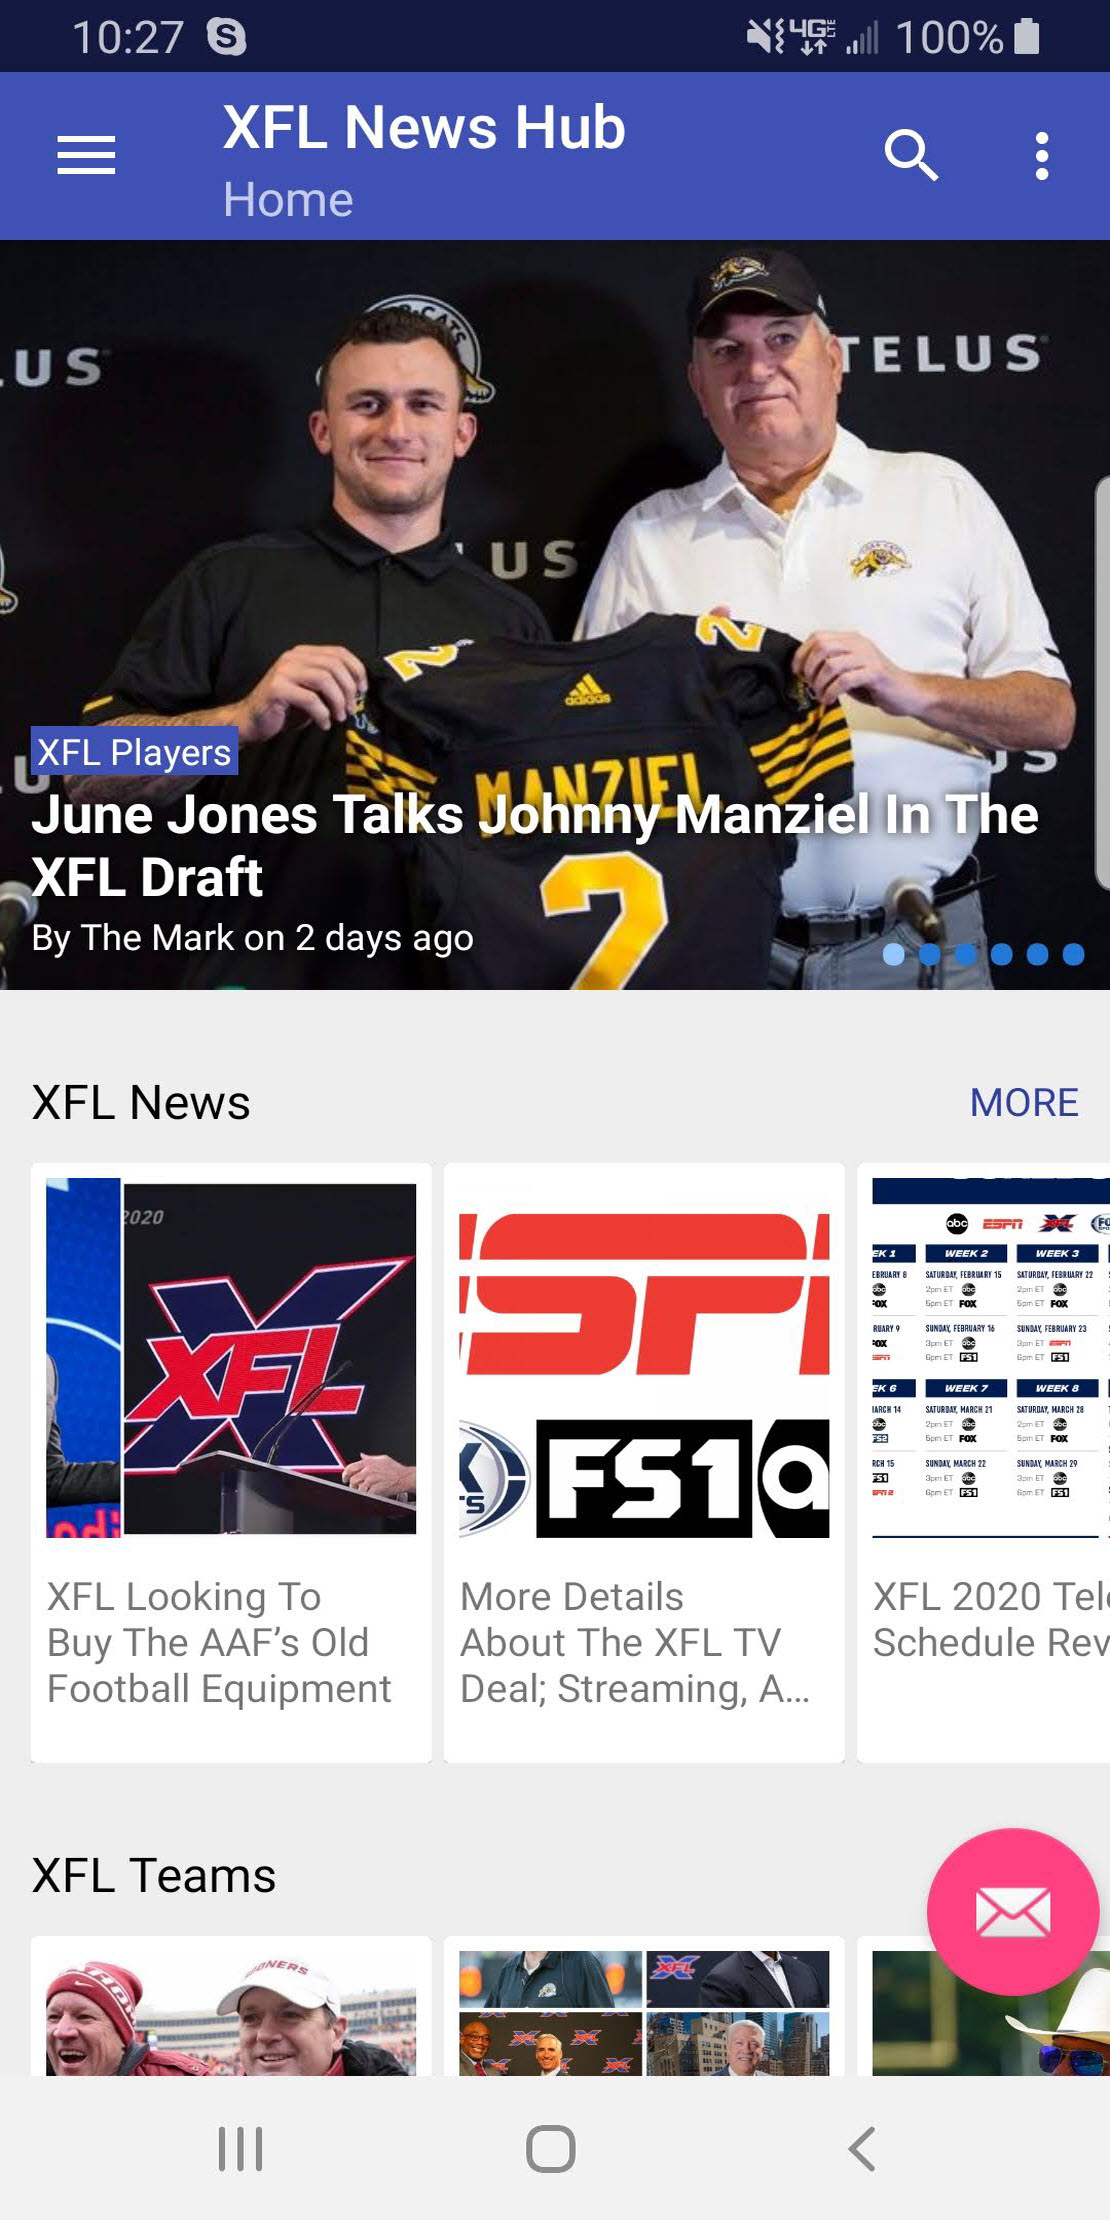 Screenshot_20190524-102720_XFL News Hub